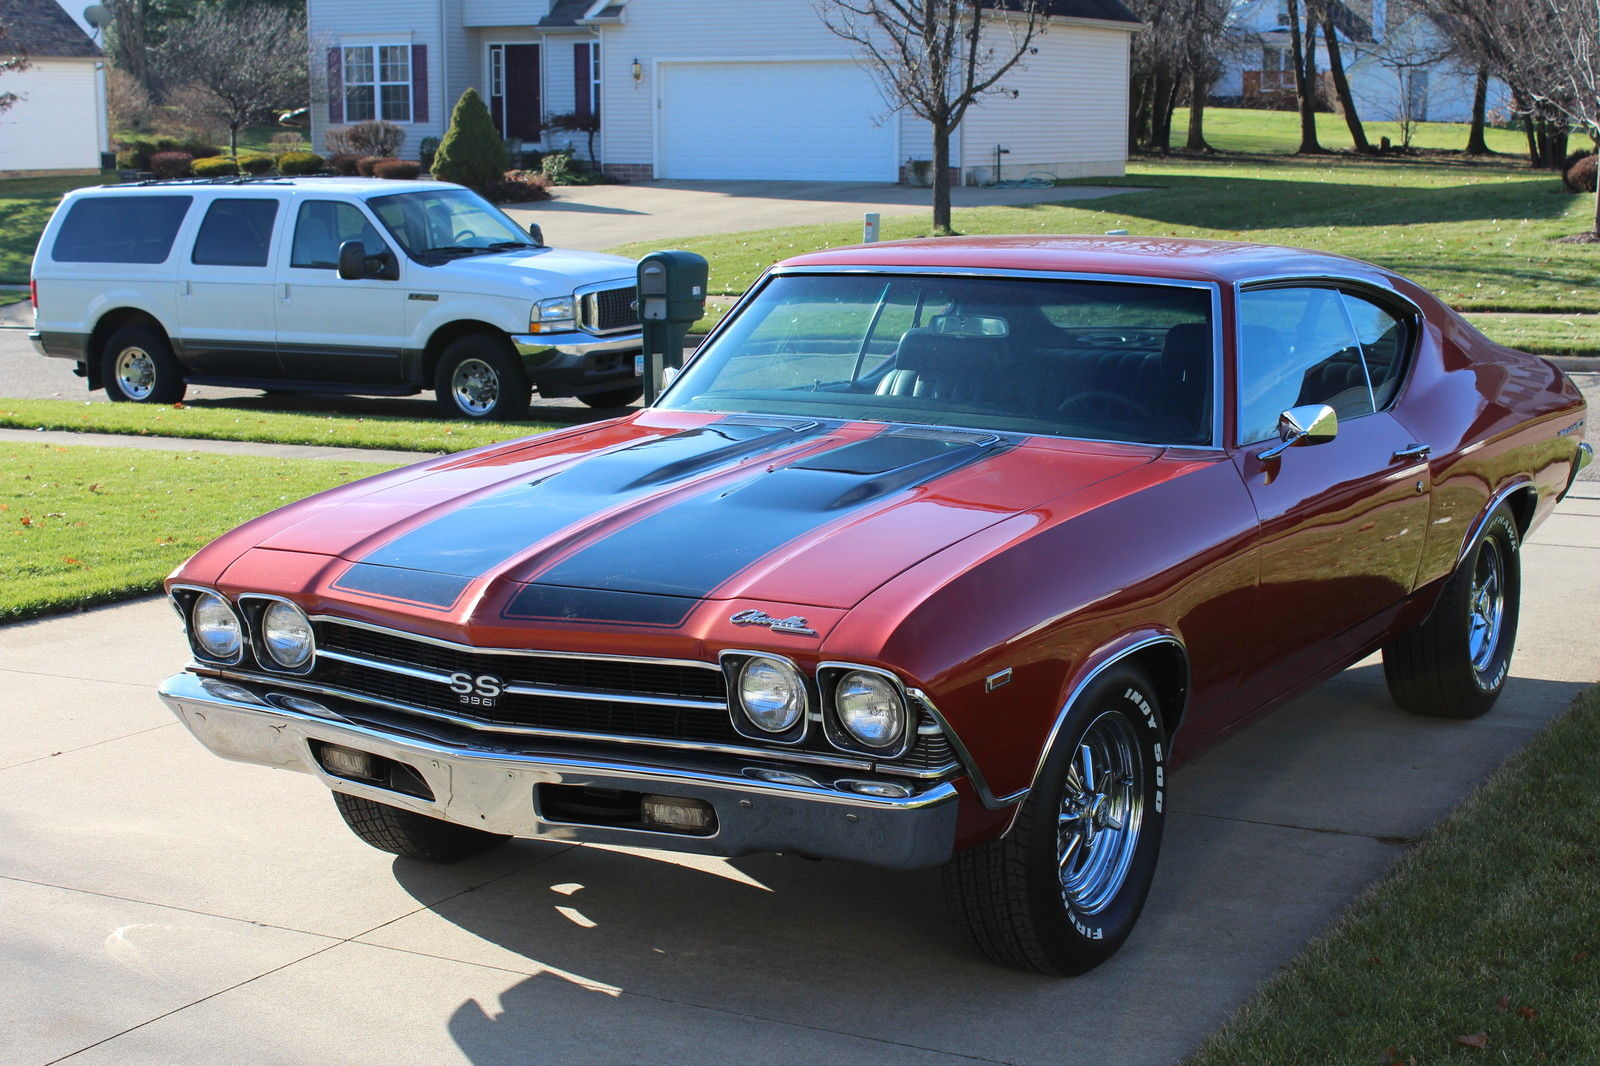 1969 Chevrolet Chevelle Ss 454 Chevy Hot Street Rat Rod Not 1968 Wiring Harness 1970 1971 1972